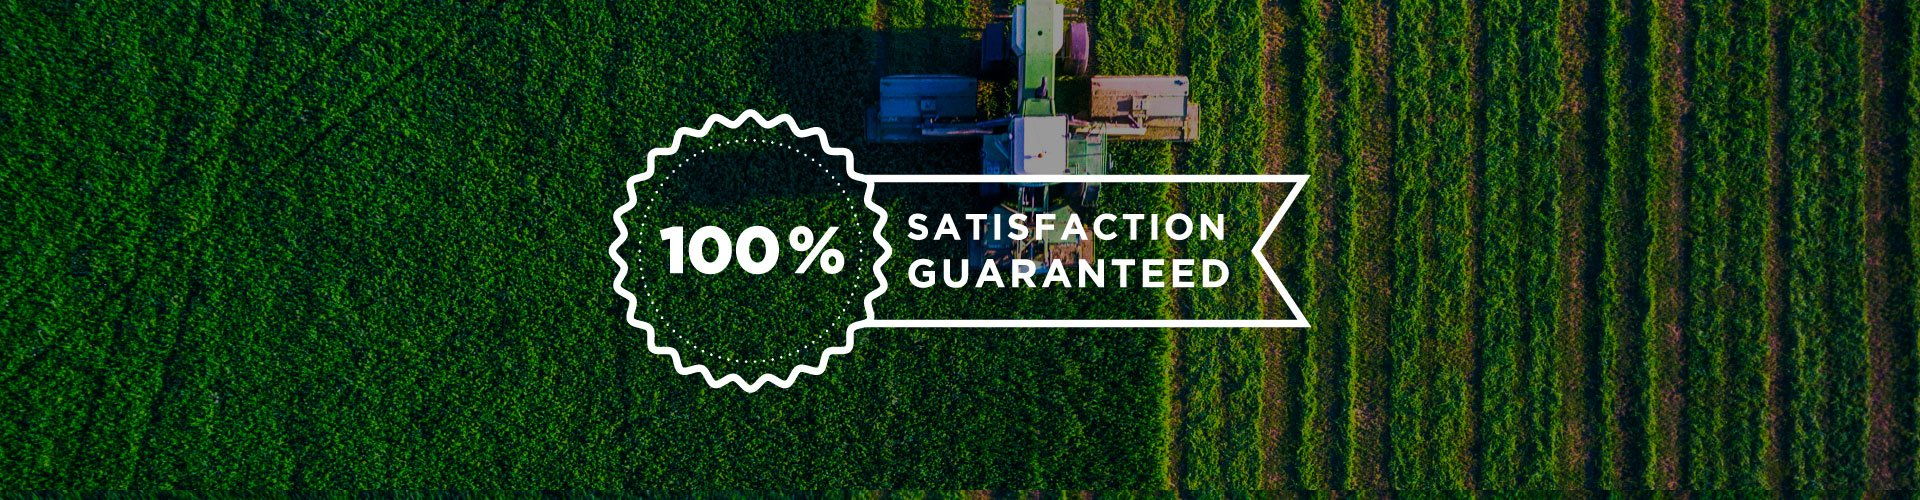 Satisfaction_Guarantee_Banner